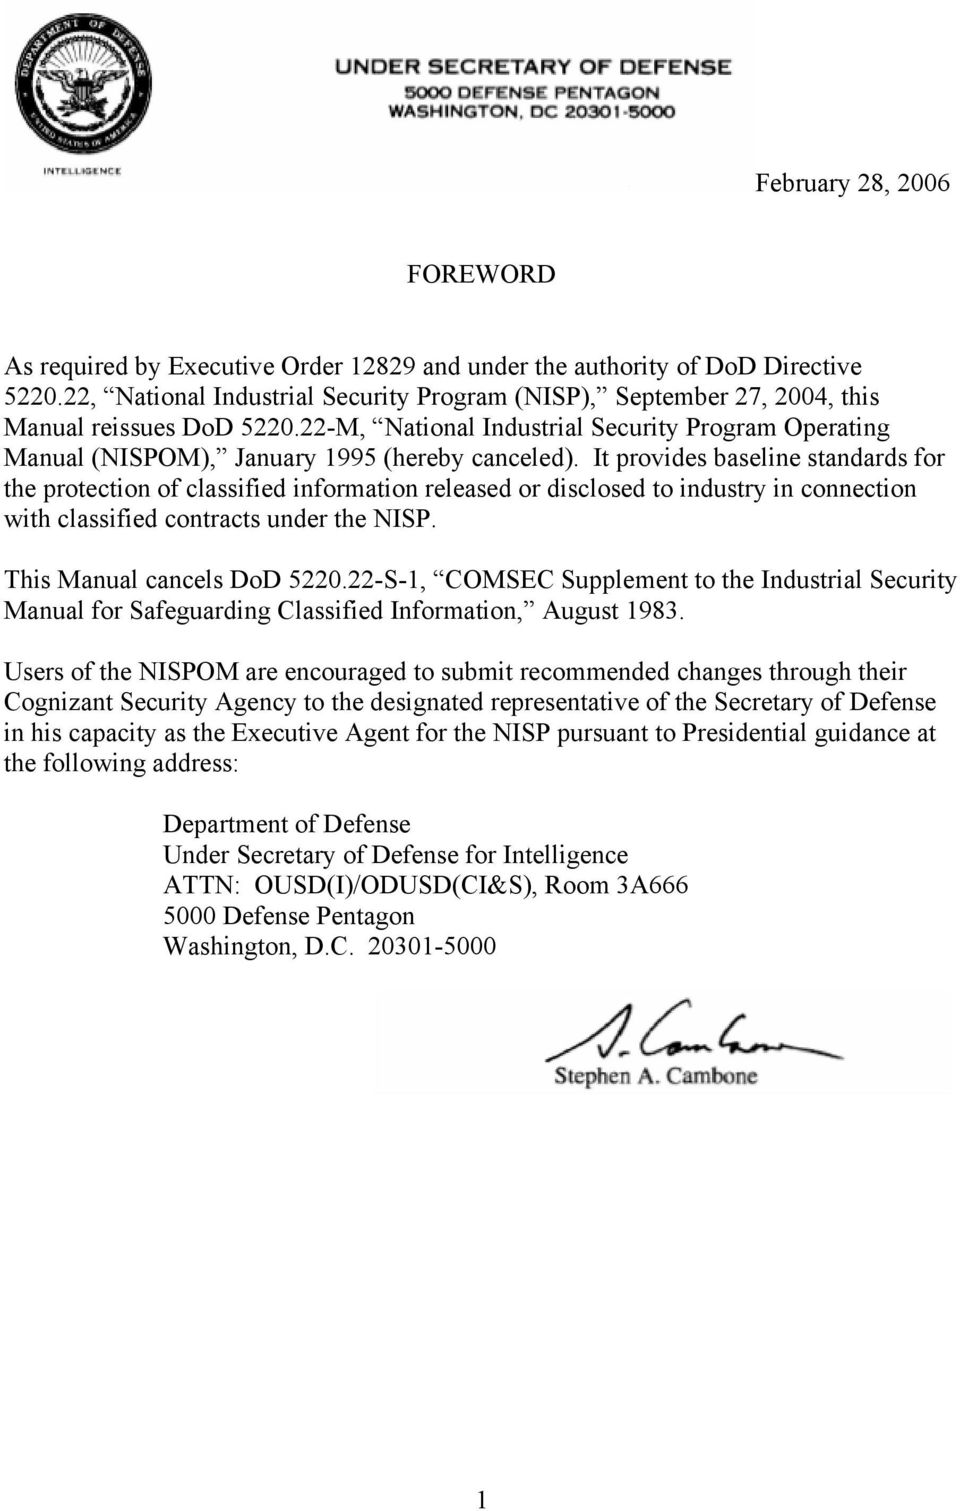 It provides baseline standards for the protection of classified information released or disclosed to industry in connection with classified contracts under the NISP. This Manual cancels DoD 5220.